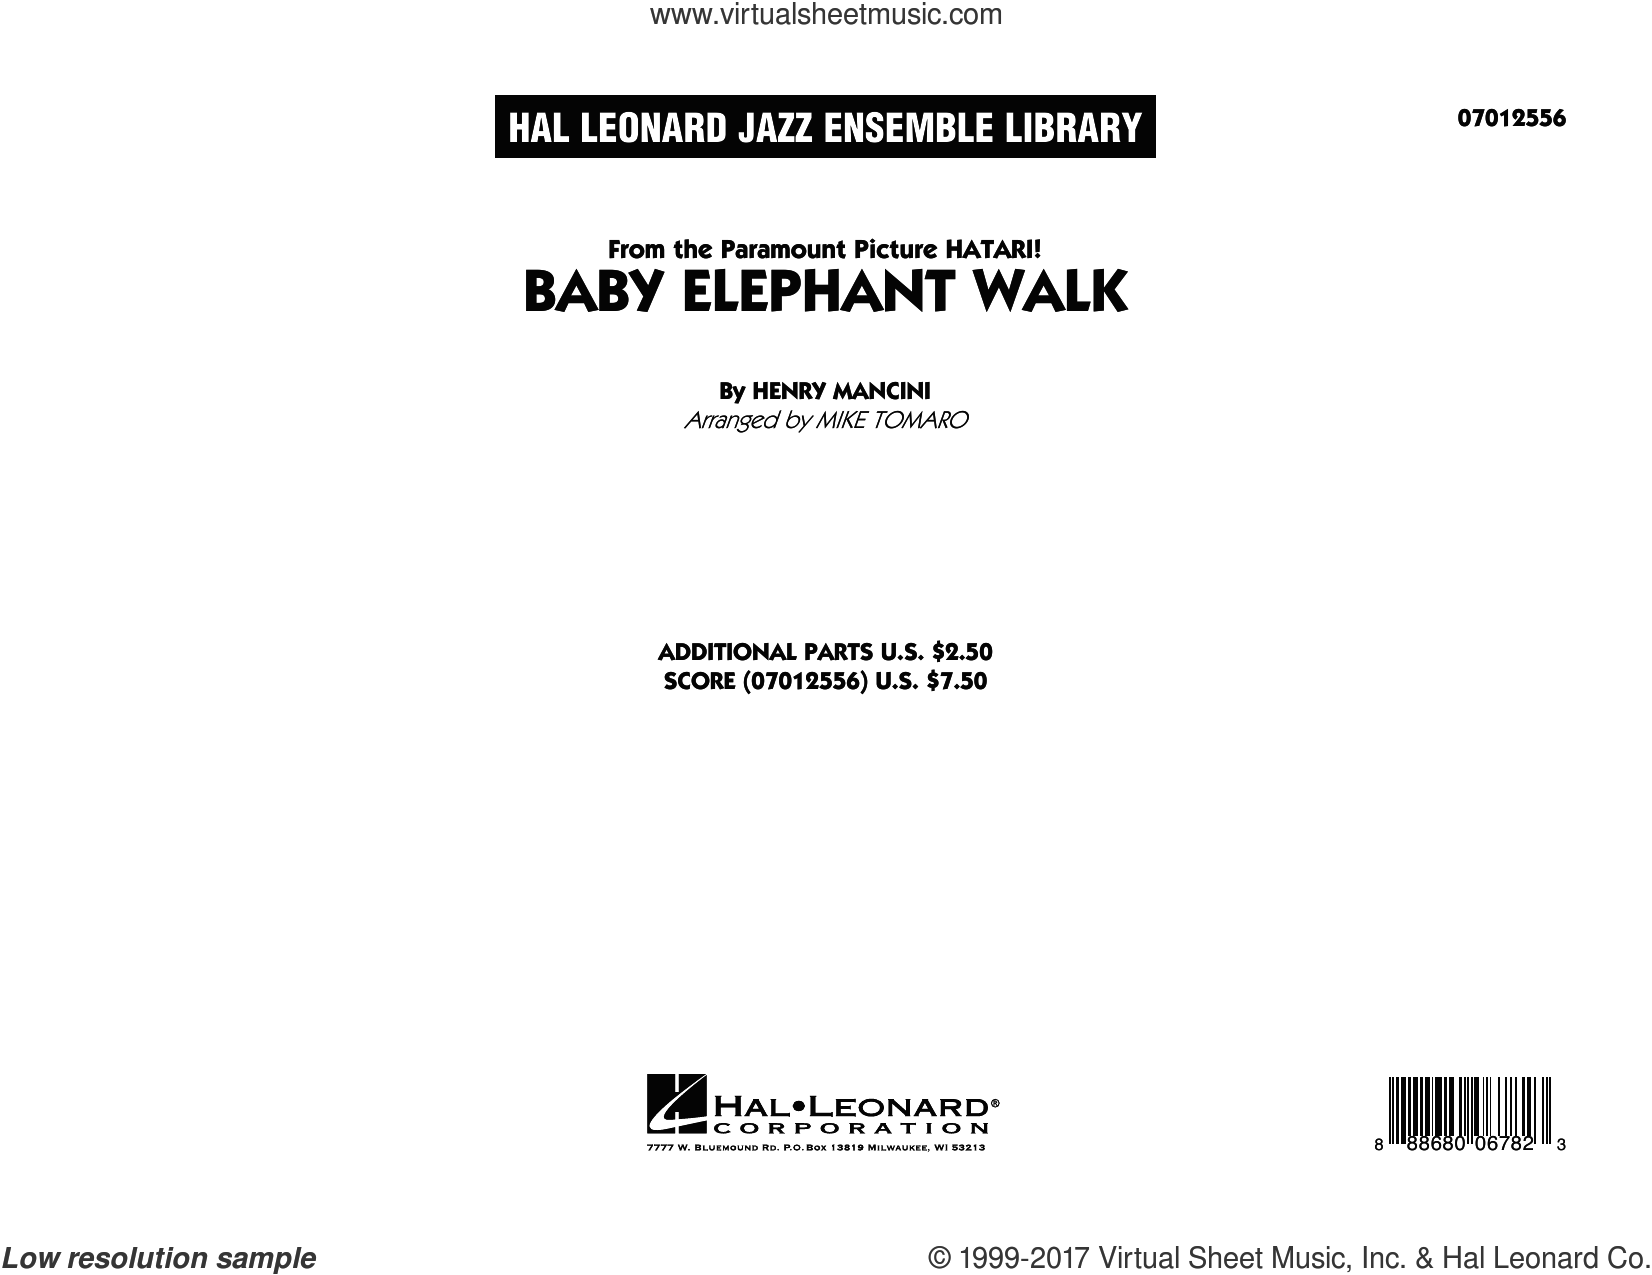 Baby Elephant Walk (COMPLETE) sheet music for jazz band by Henry Mancini, Hal David, Lawrence Welk and Mike Tomaro, intermediate jazz band. Score Image Preview.